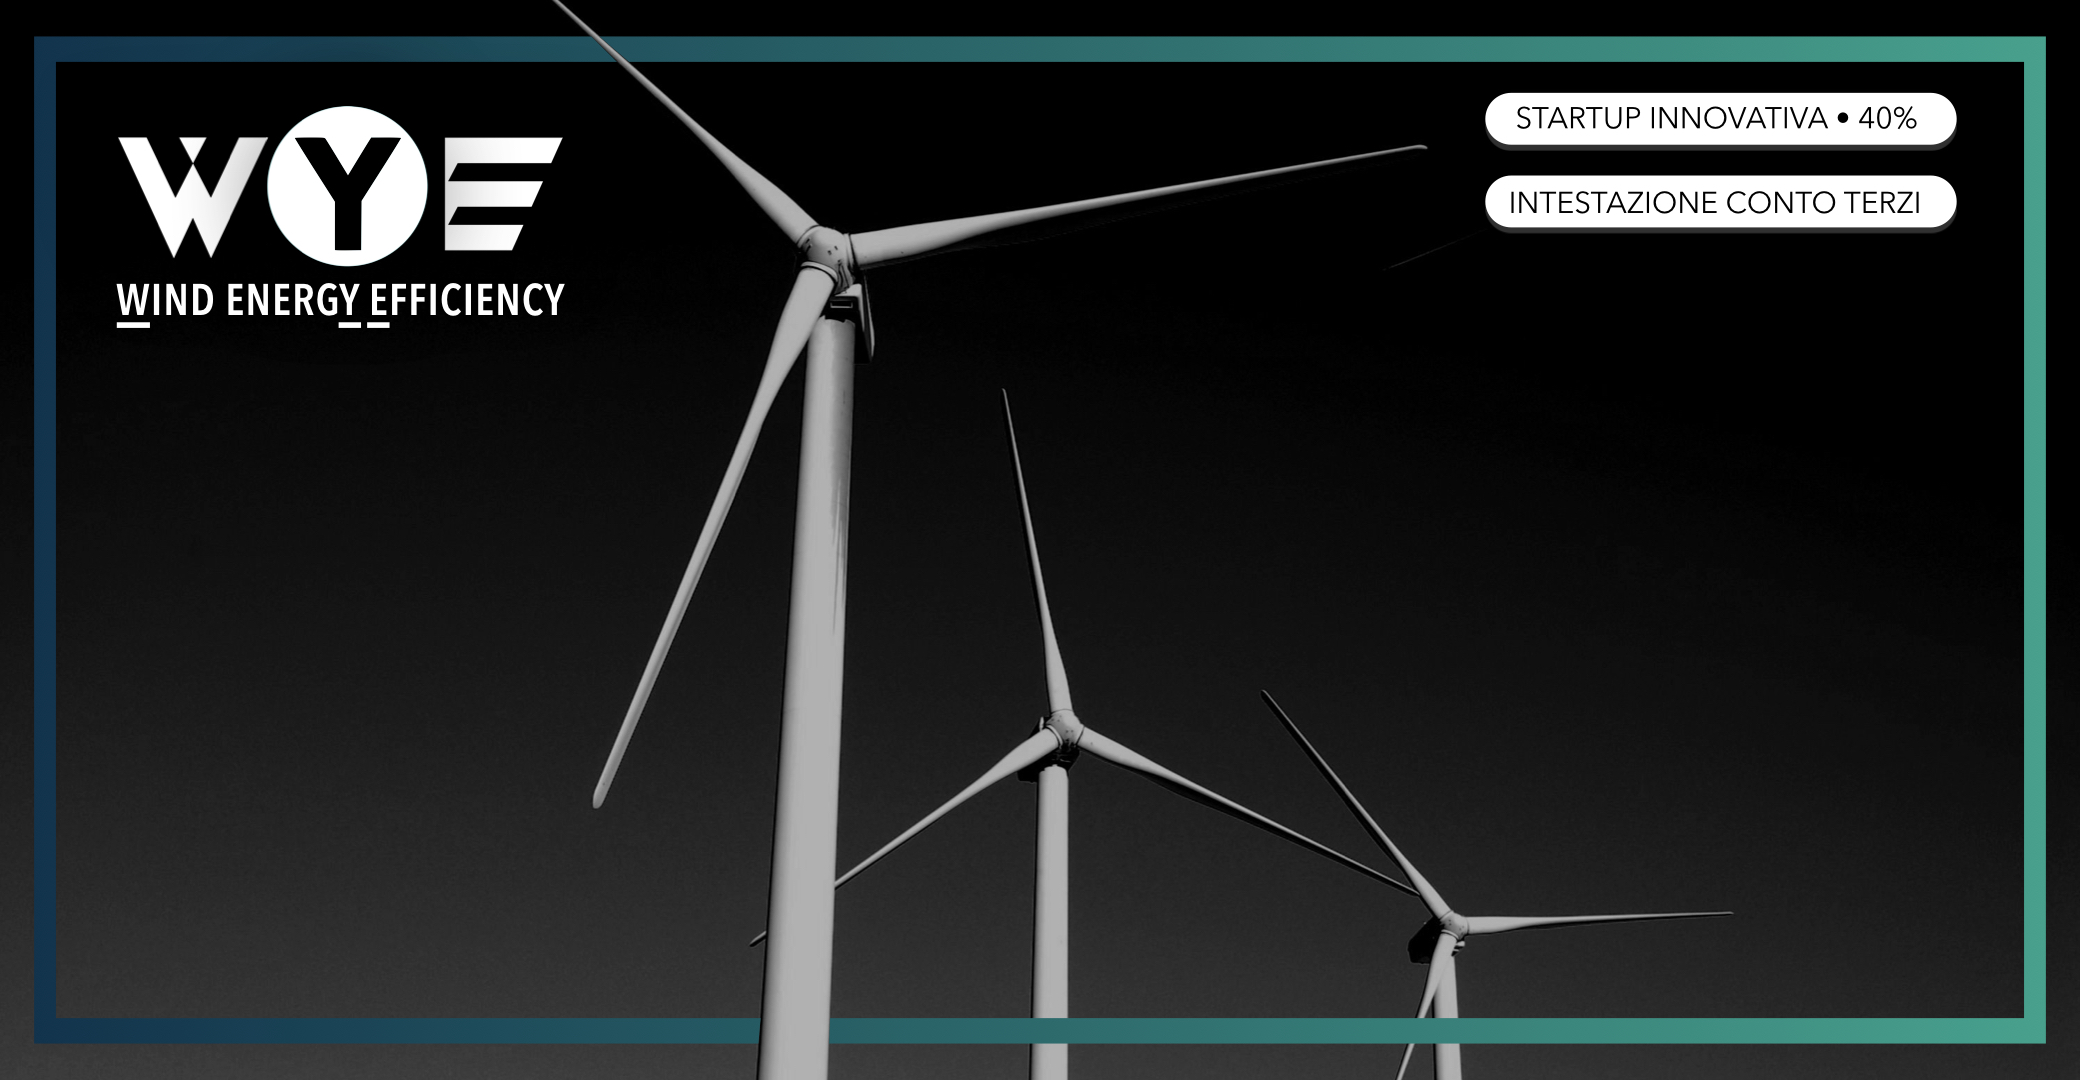 wind-energy-efficiency-eolico-crowdfunding